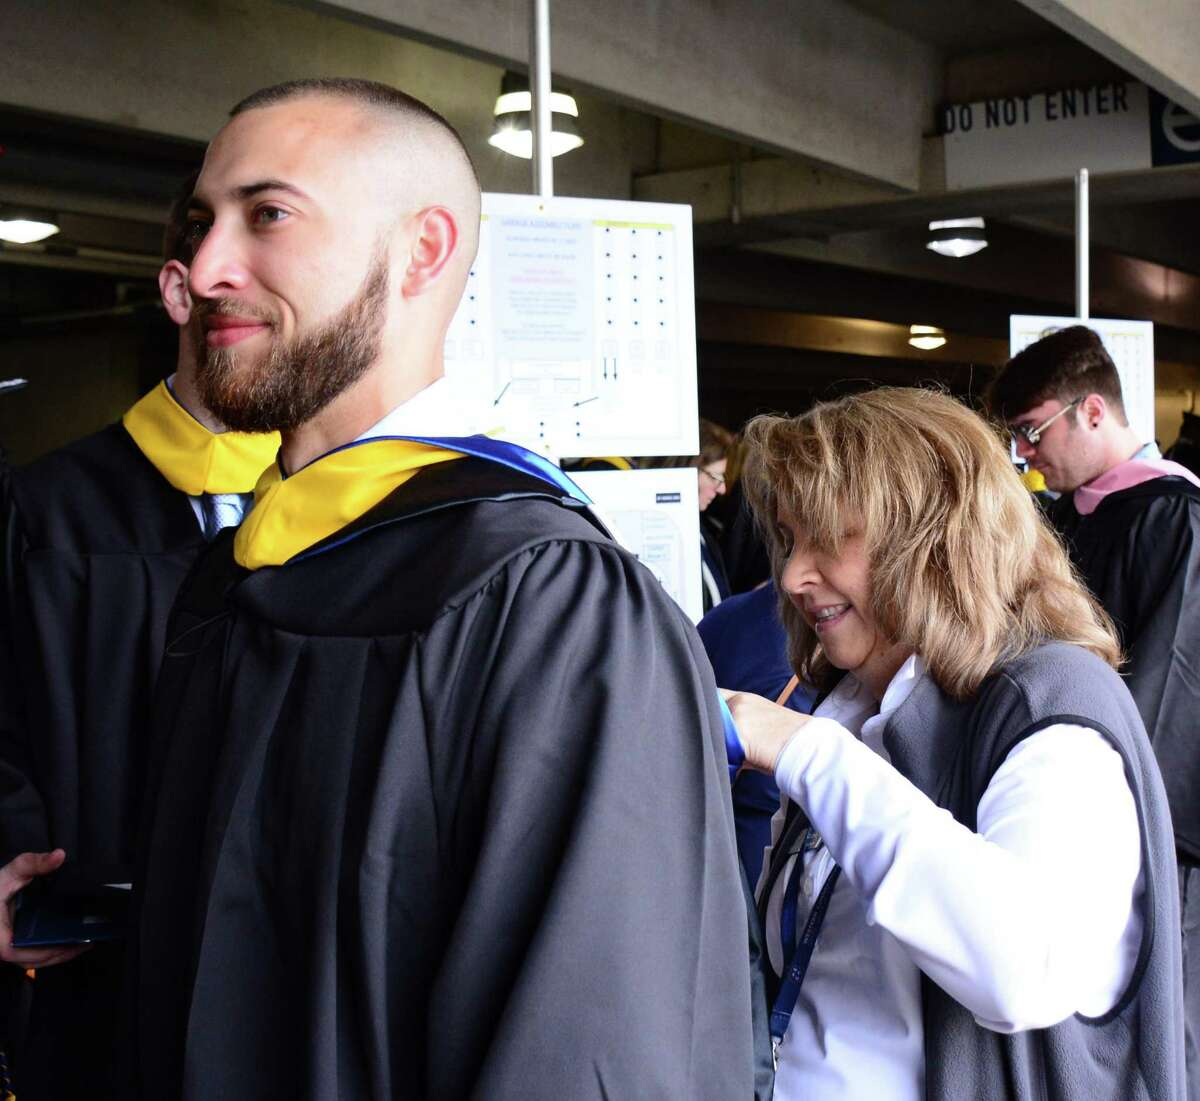 Nancy Barton helps Zachary Lopez with his cap and gown during Western Connecticut State Universities commencement ceremony on Sunday May 19, 2019 at t1he Webster Bank Arena in Bridgeport Connecticut.